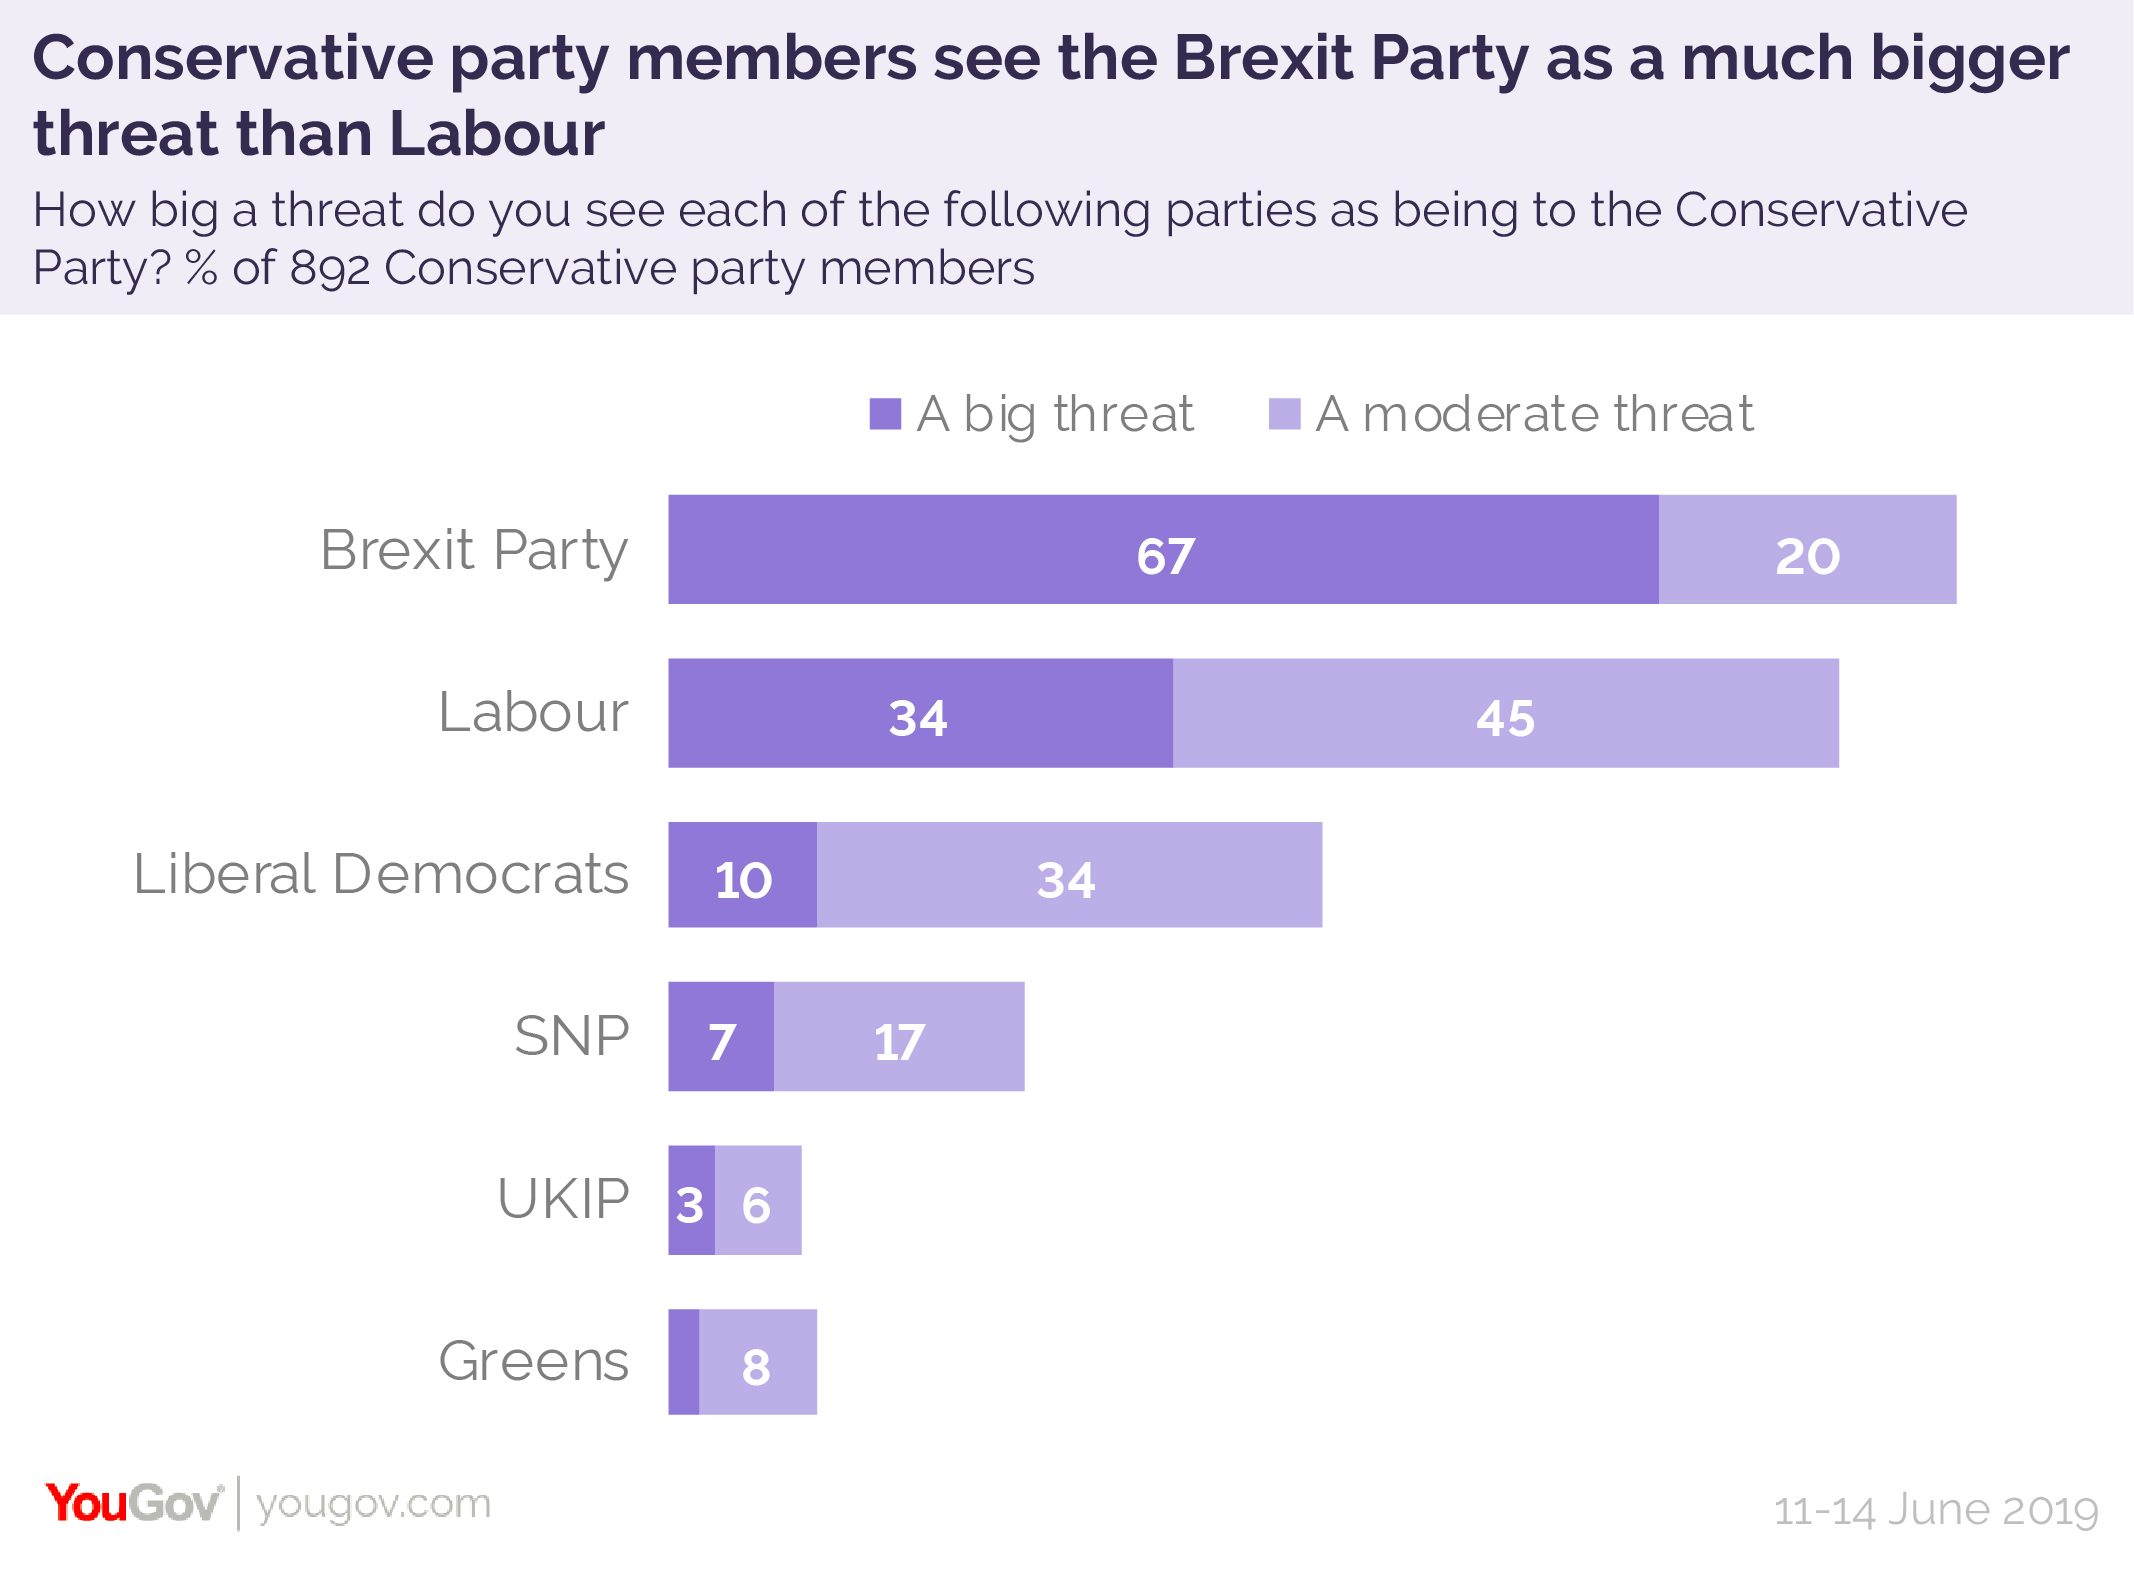 Most Conservative members would see party destroyed to